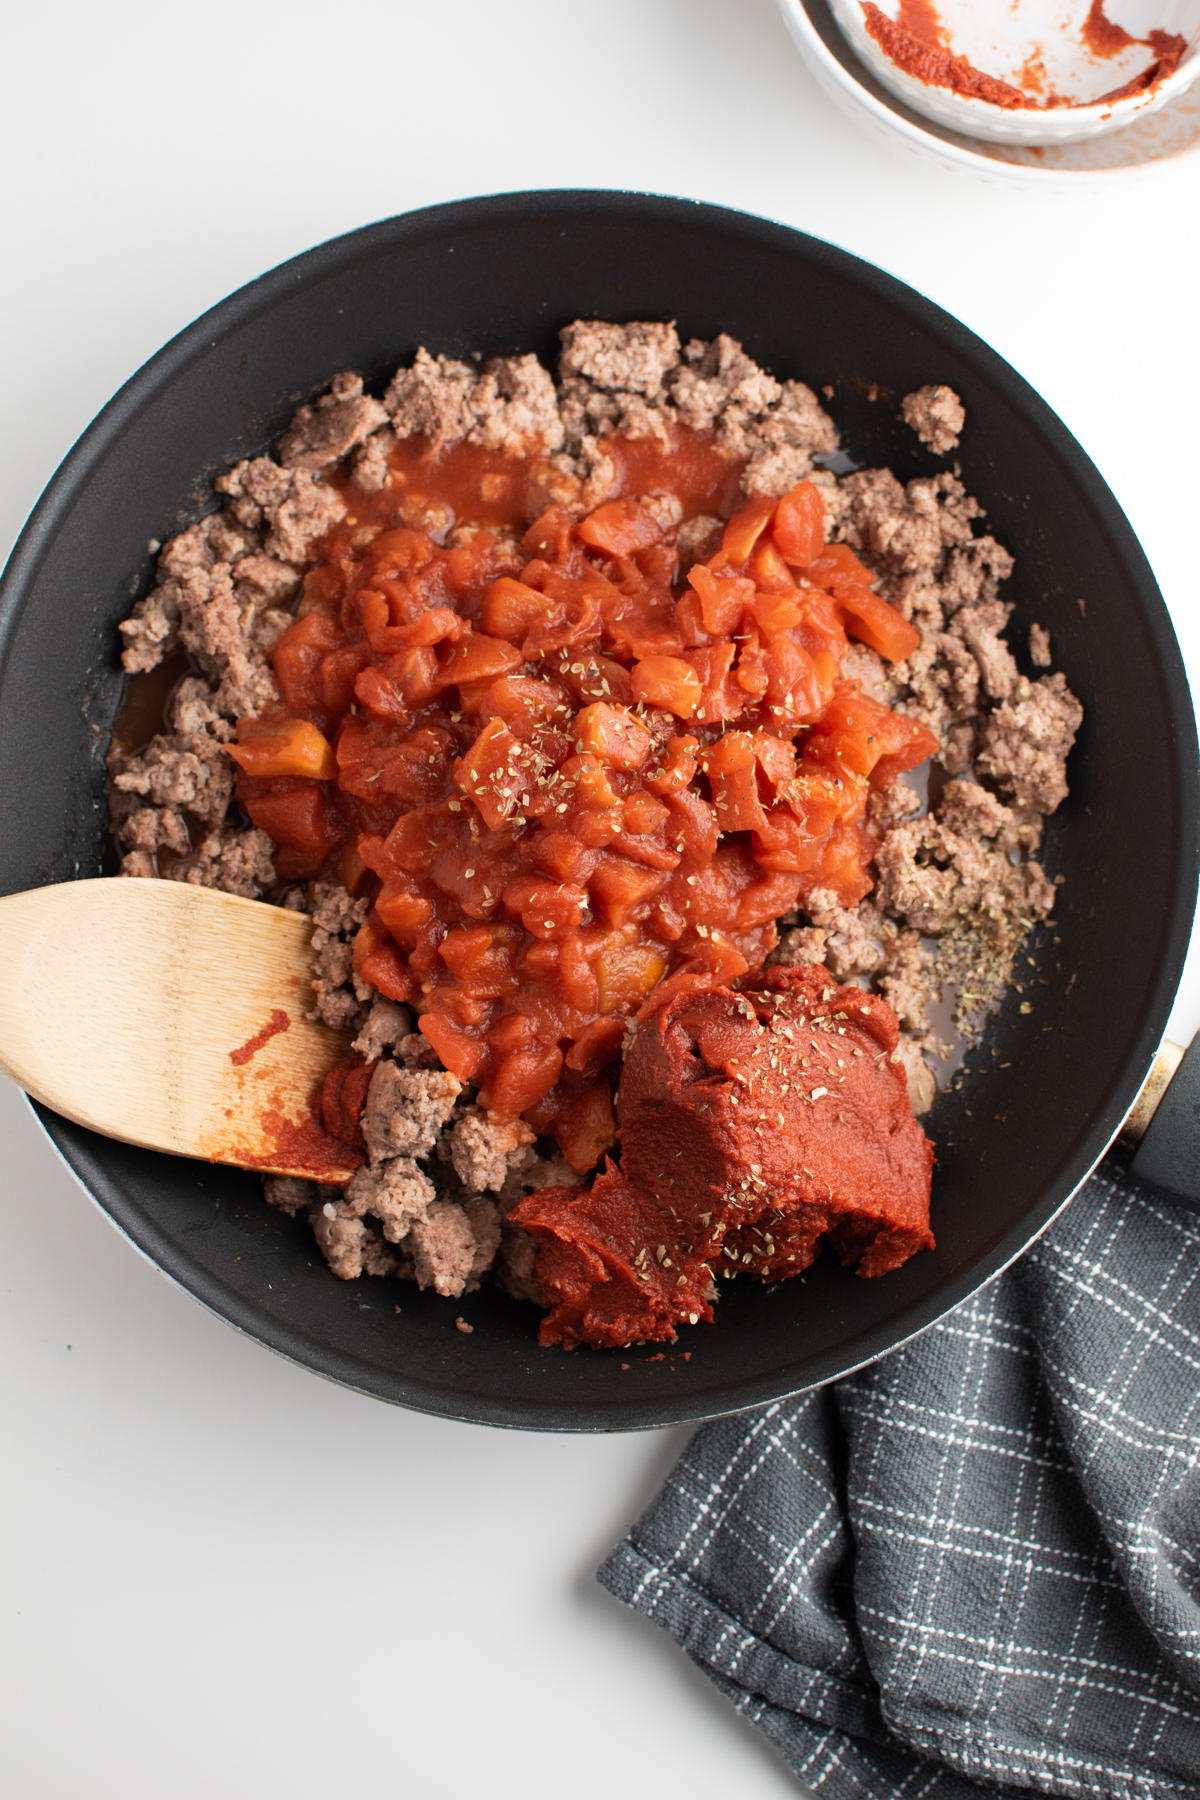 Tomatoes, tomato paste, spices and ground beef in large pan.